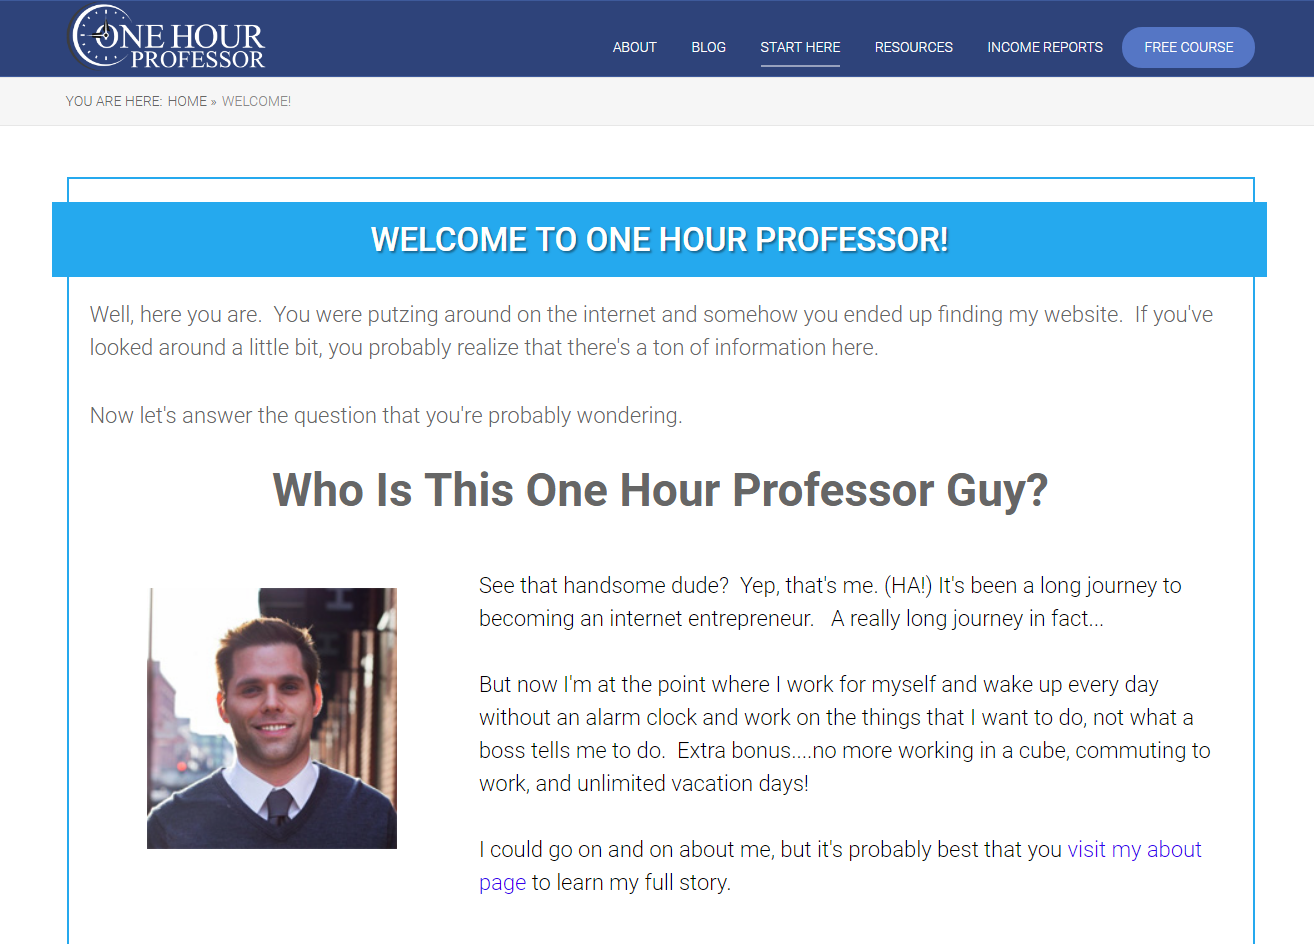 one hour professor start here